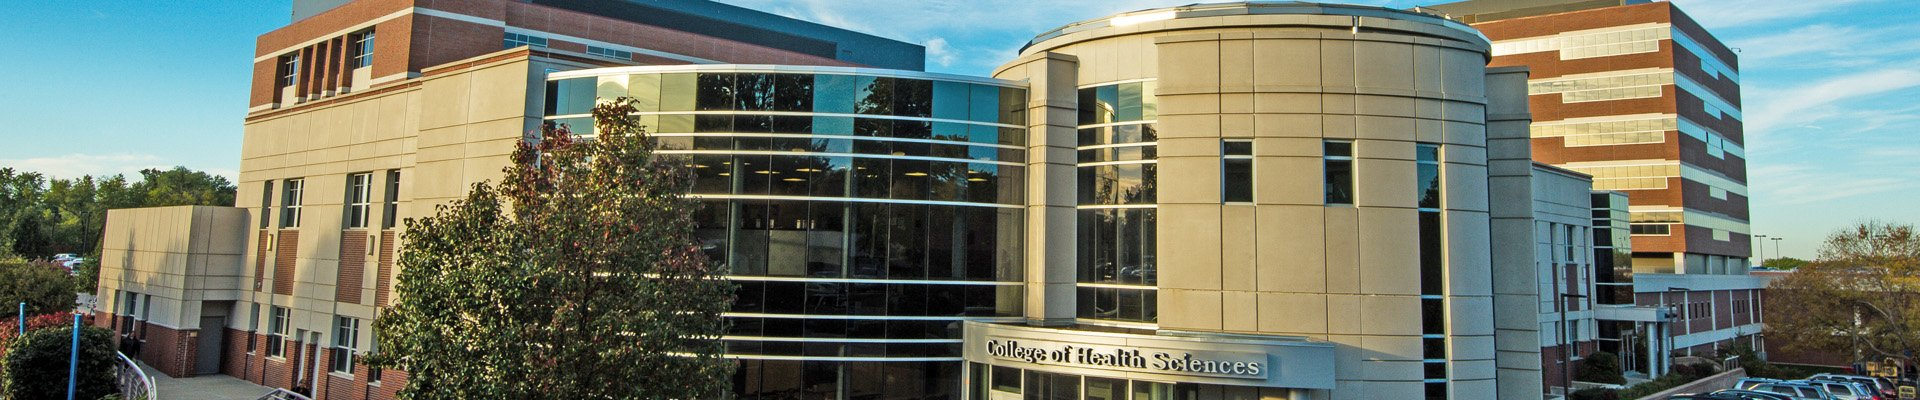 about bryan college of health sciences